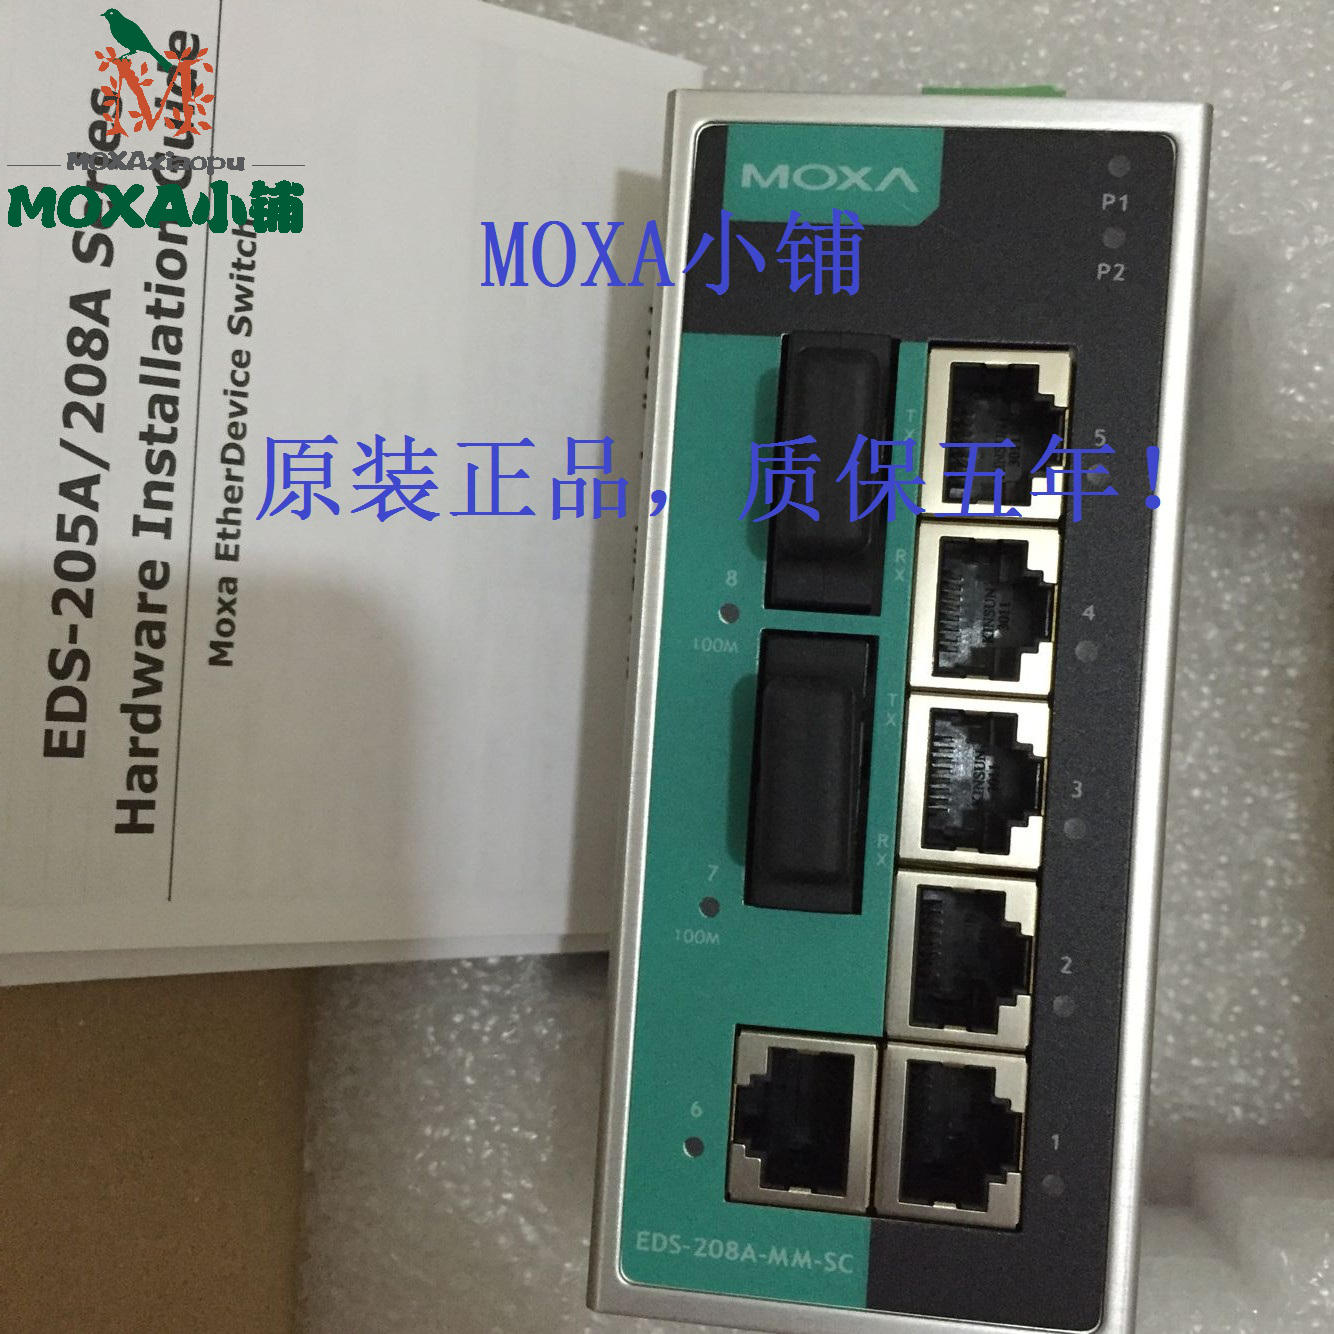 Moxa Switch Moxa Moxa Eds 208a Mm Sc2 Multimode Optical Port 6 Electrical Port Non Network Switch